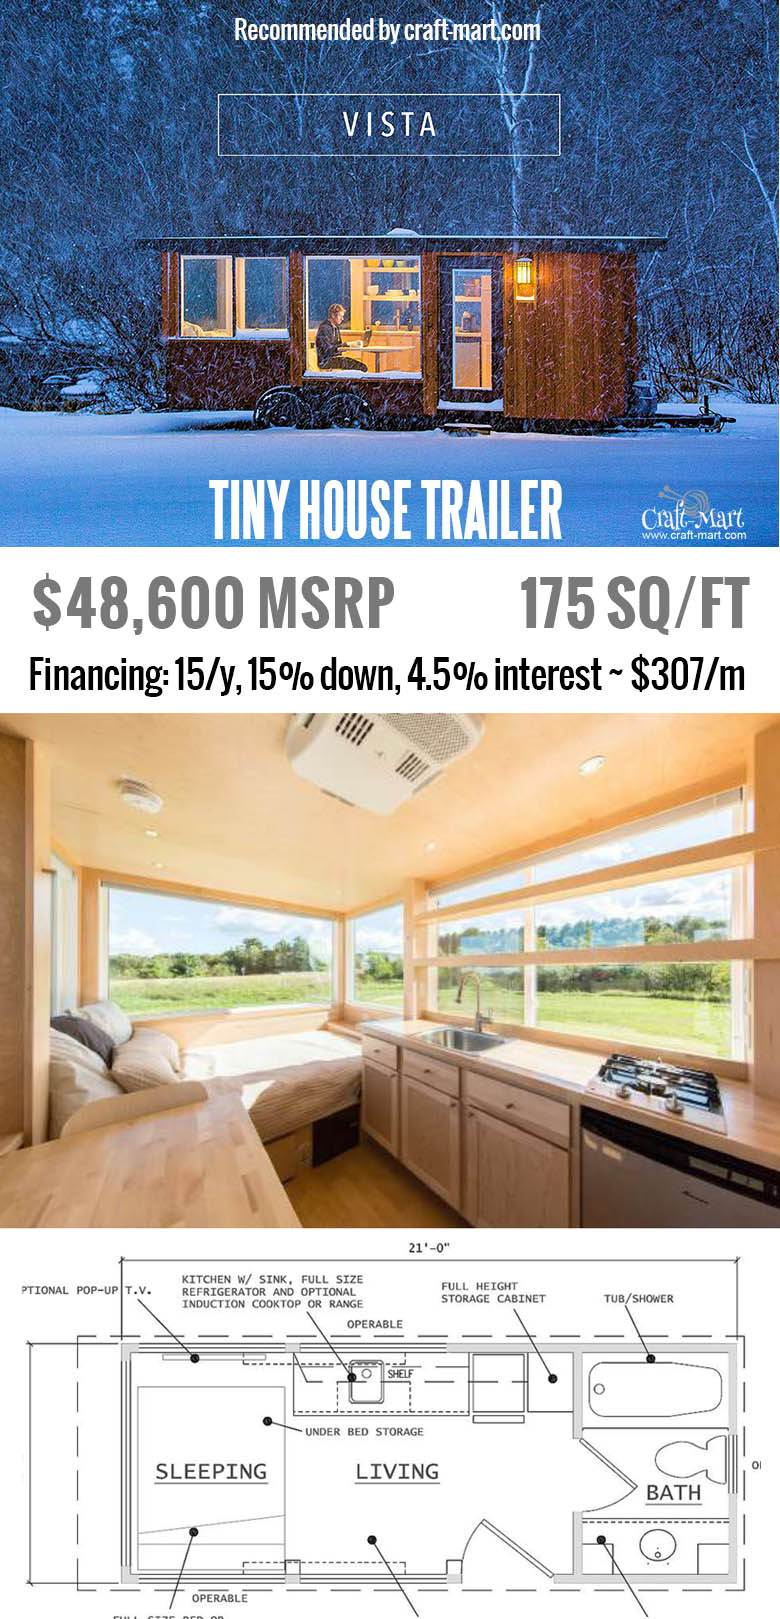 Vista is perfect for a guest house Do you have a place to put one of these tiny houses? Get one of these for FREE and start earning money from renting it! Or simply buy one of the most beautiful tiny house trailers with easy financing starting from $195/m! #tinyhouse #tinyhouseplans #minimalism